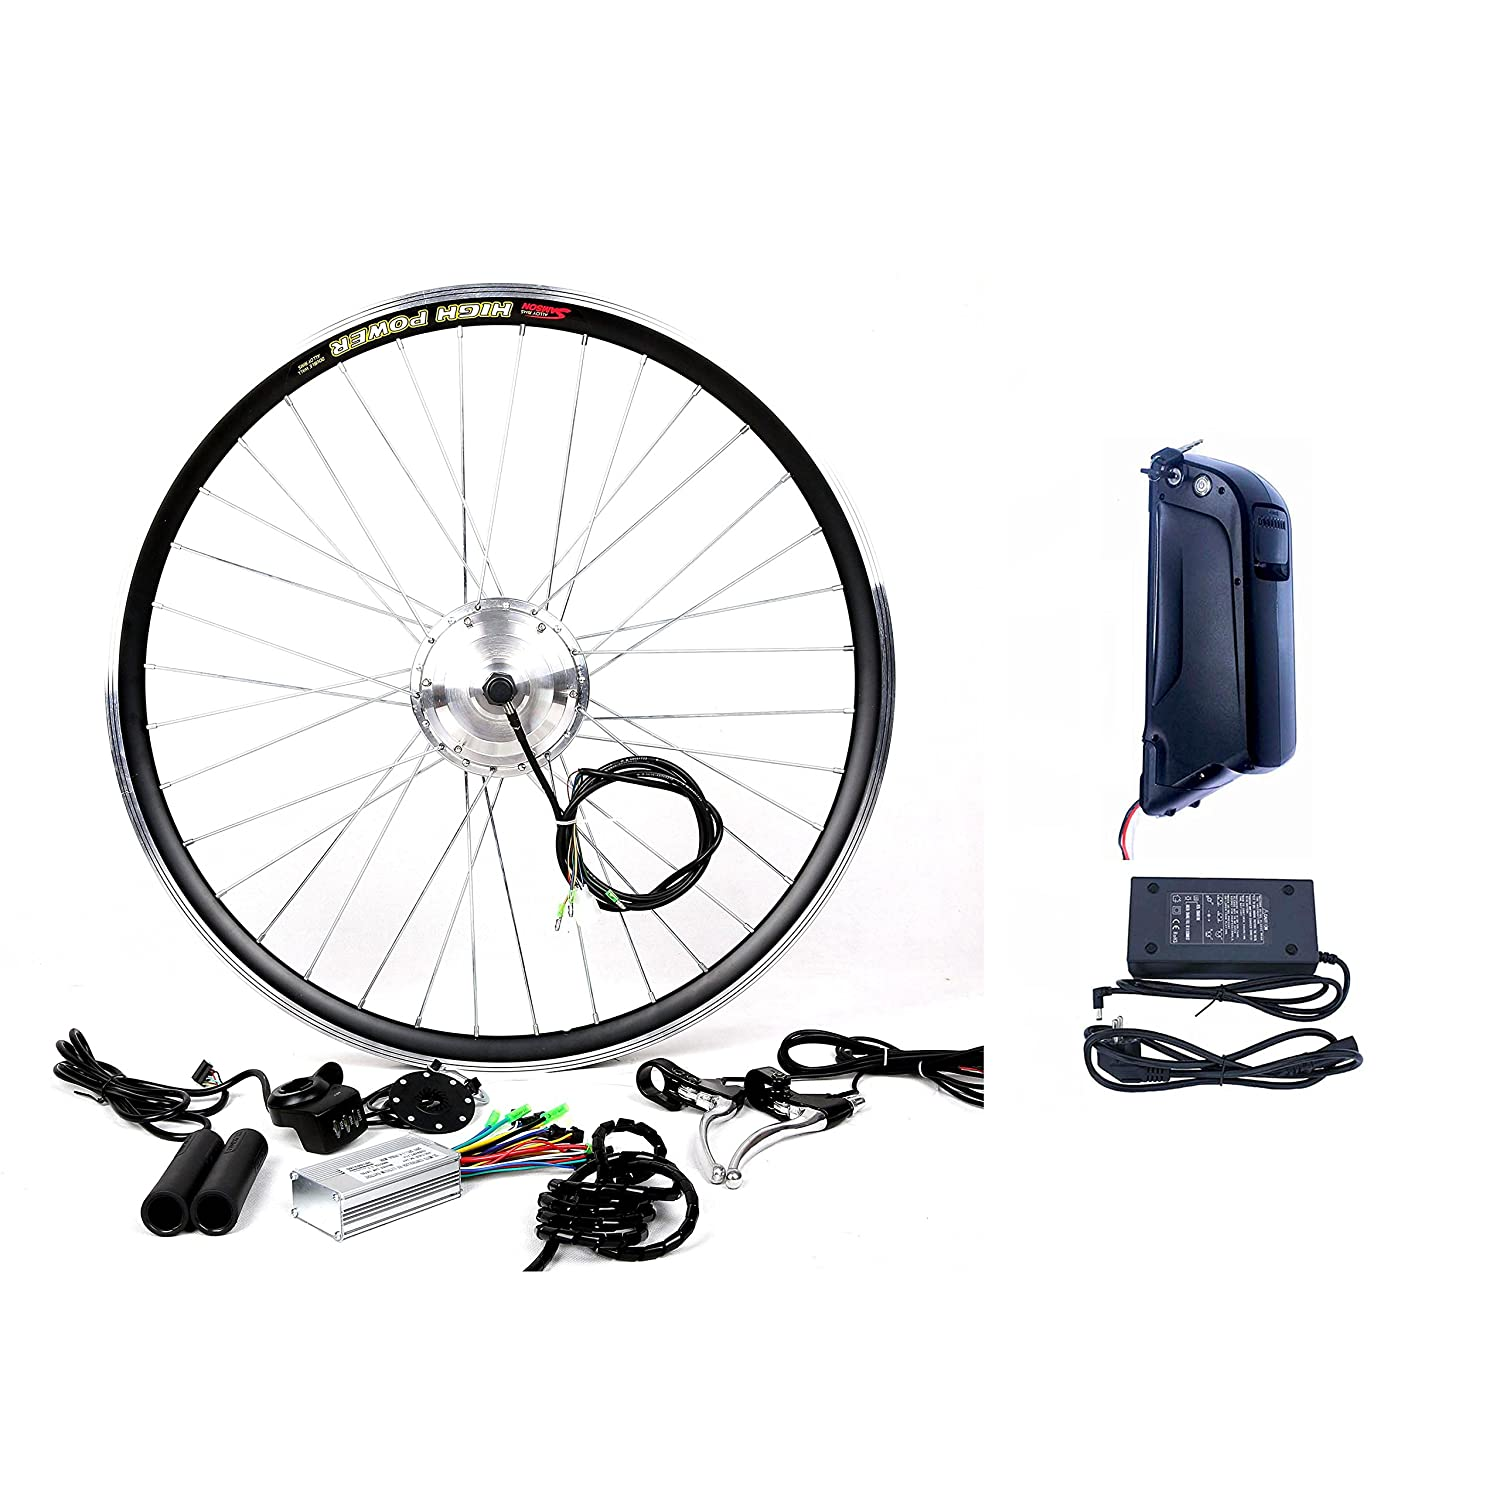 LCD Display Tire theebikemotor 48V1500W Hub Motor Electric Bike Conversion Kit Sine-Wave Controller